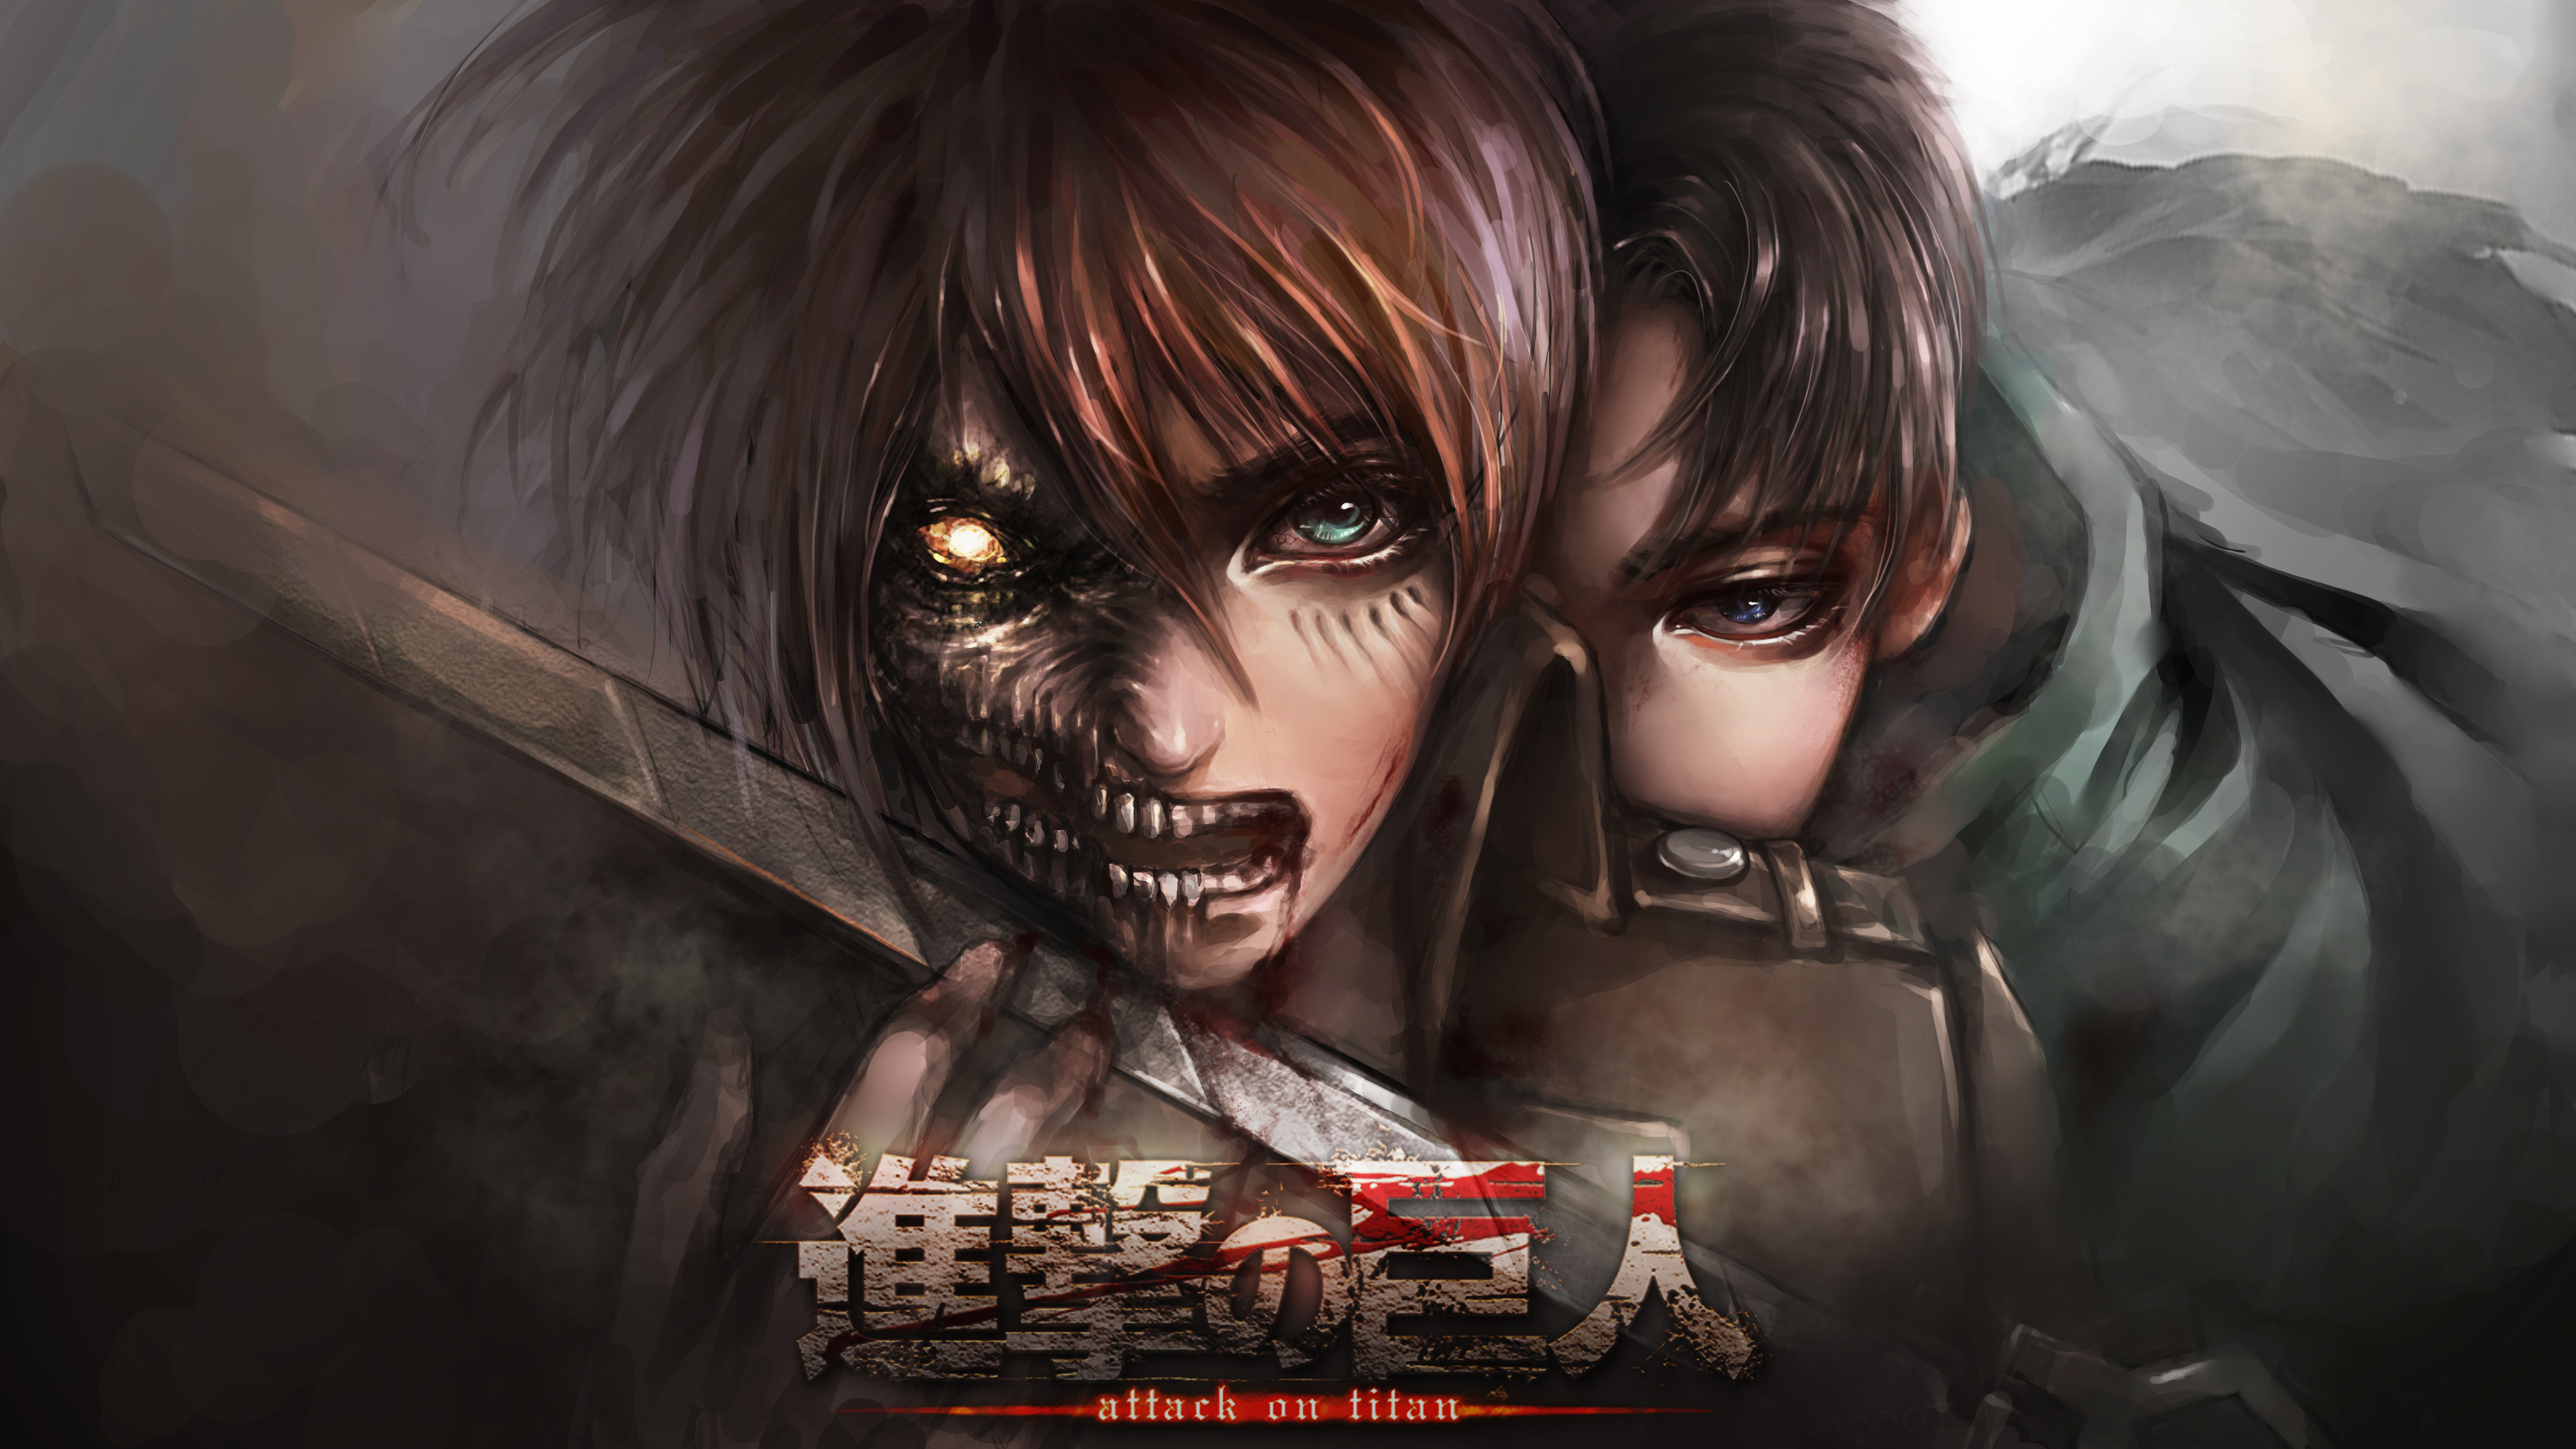 FilterAttack On Titan HD Wallpaper